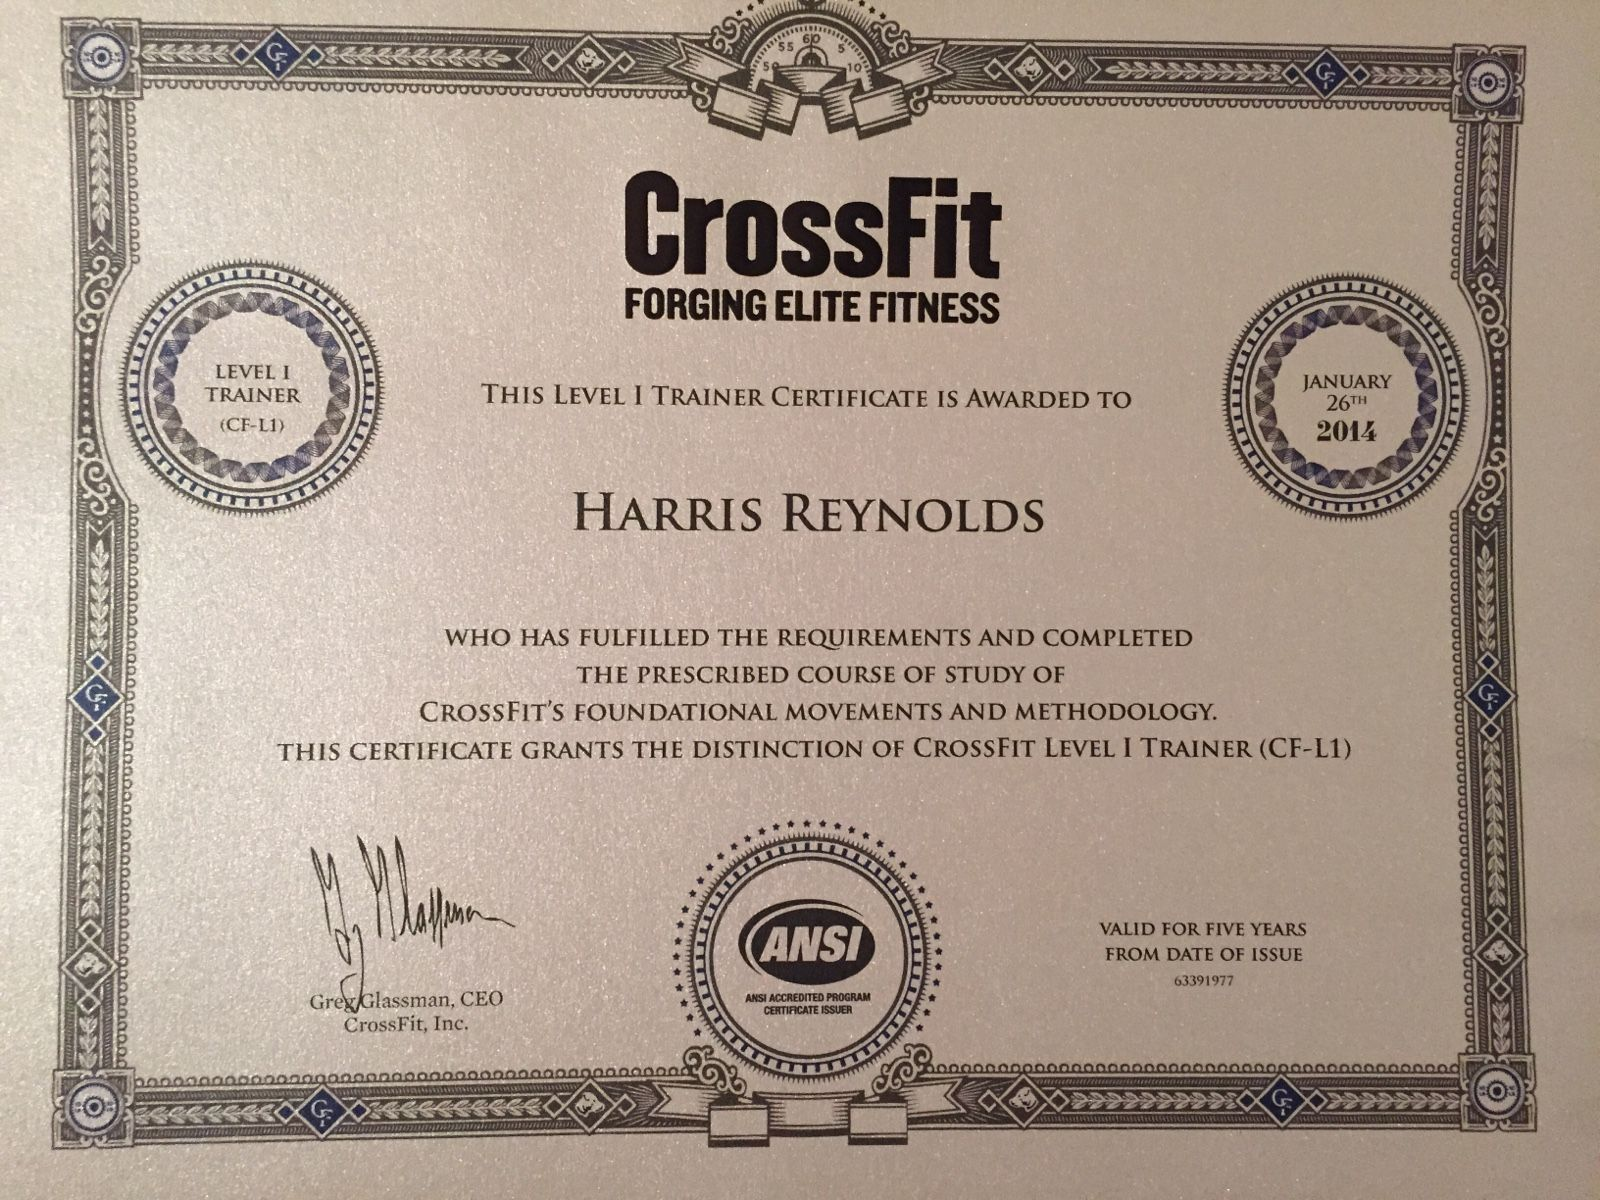 What To Expect From The Crossfit Level 1 Certificate Course